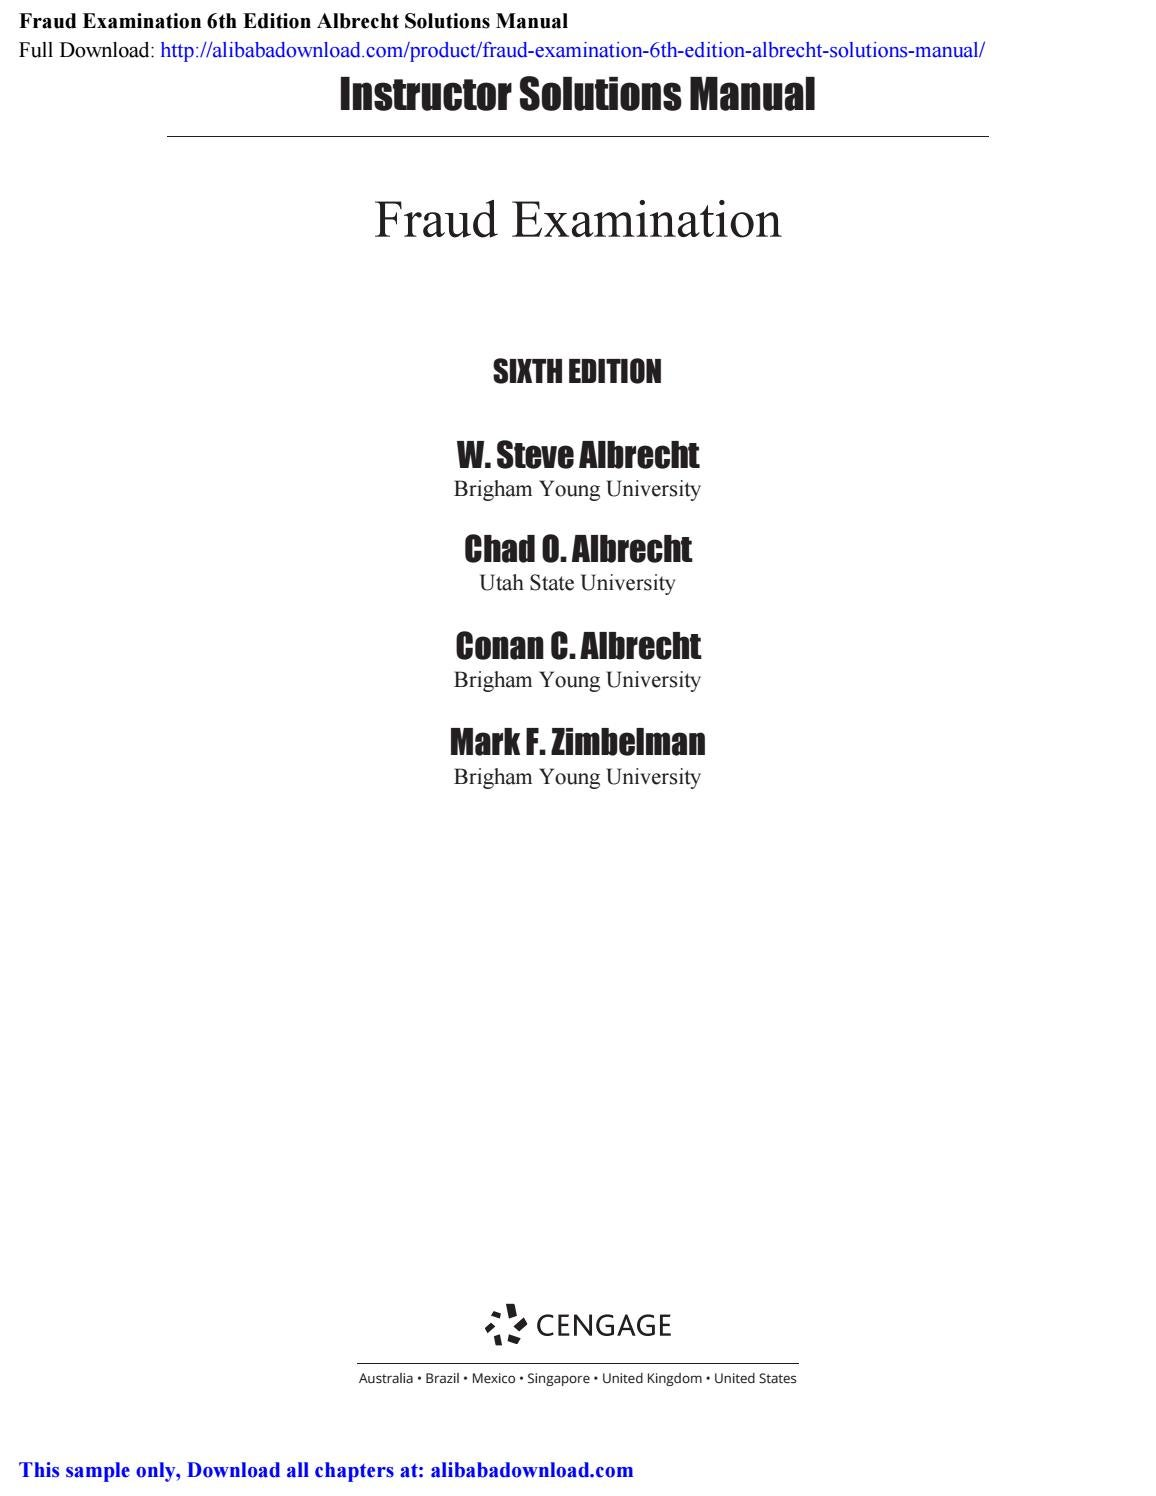 Fraud Examination 6th Edition Albrecht Solutions Manual By